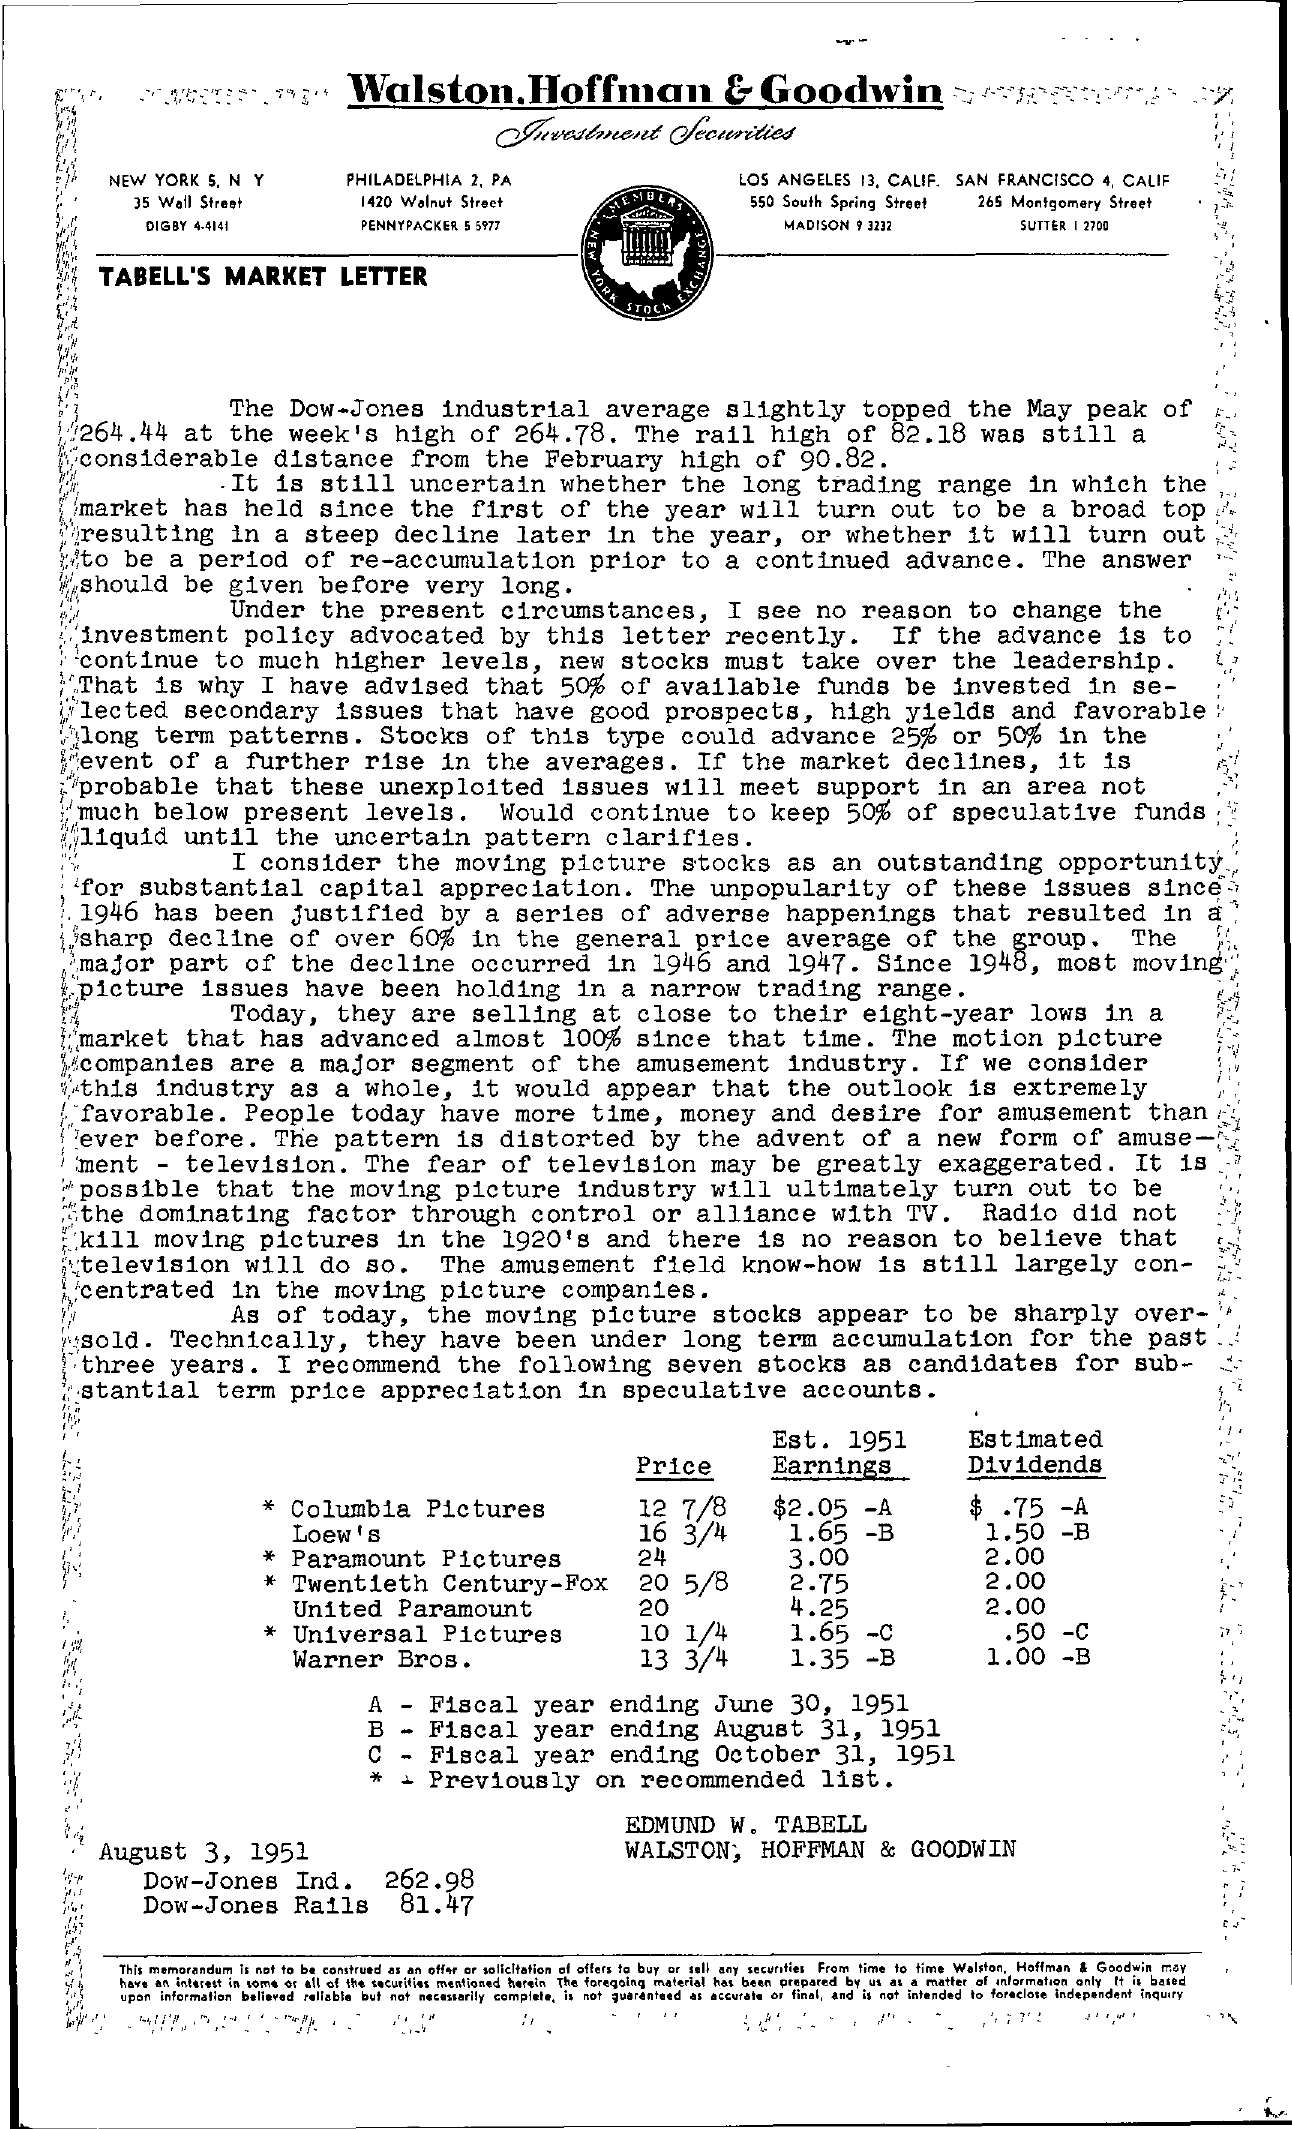 Tabell's Market Letter - August 03, 1951